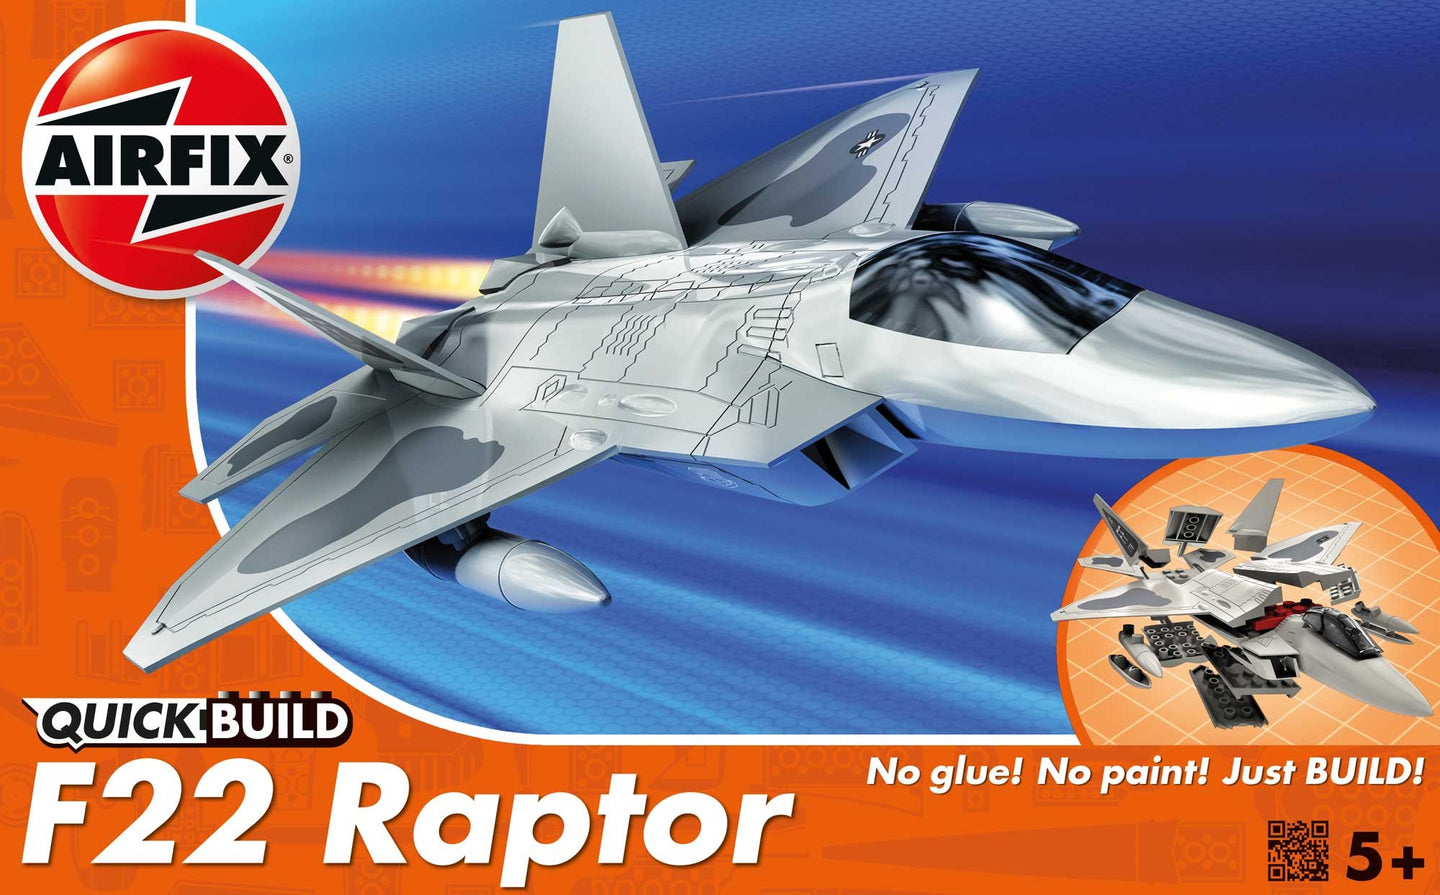 Airfix QuickBuild Snap F-22 Raptor Plastic Kit J6005R-1